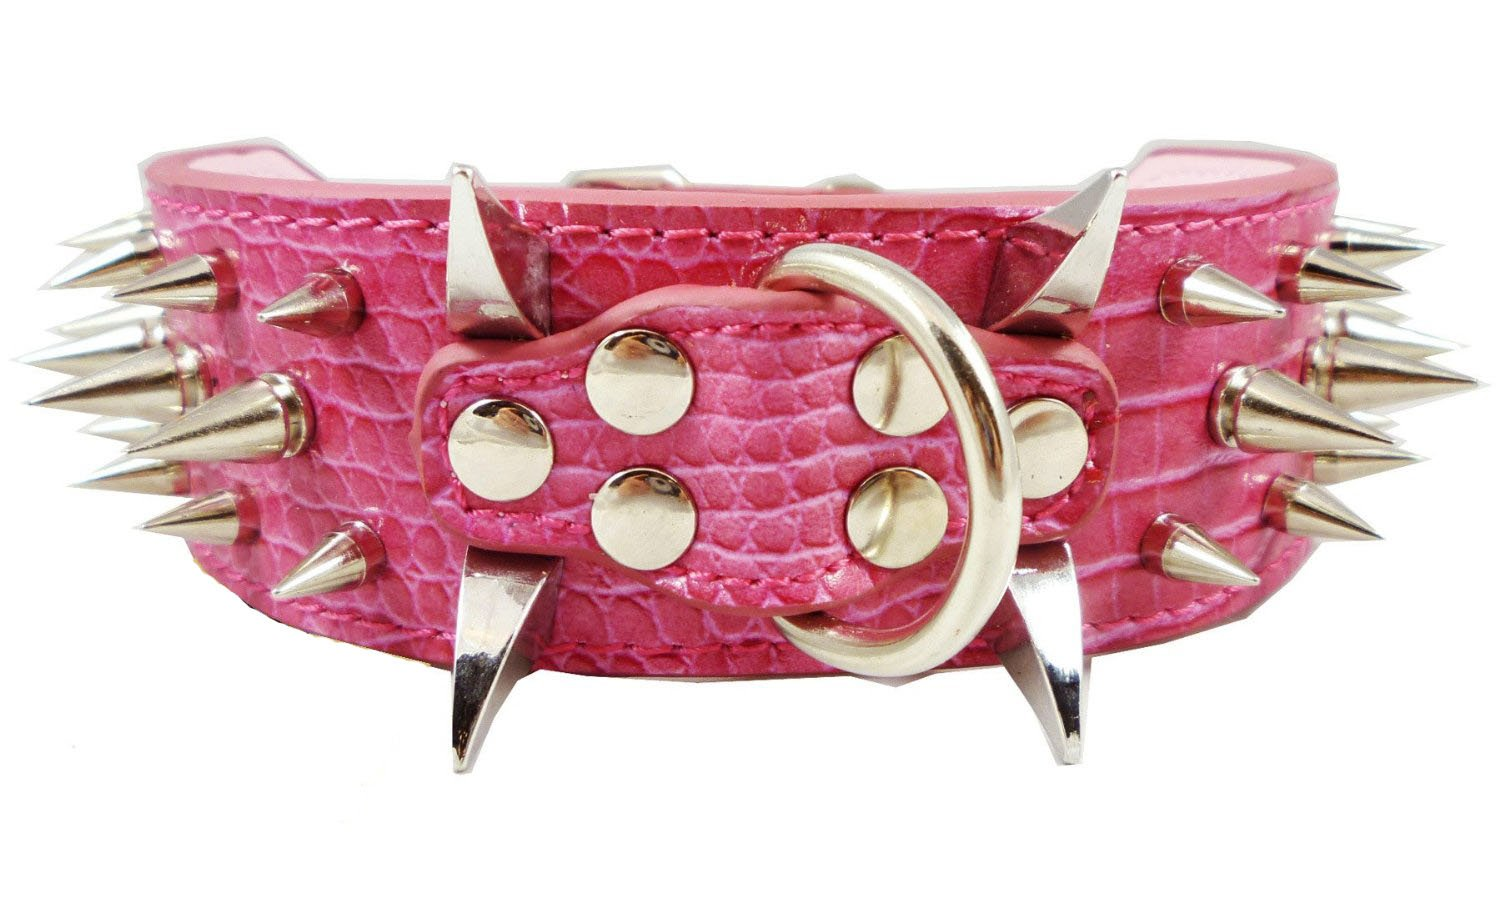 Benala Dog Pet Collars Pu Leather Rivet Spiked Adjustable Dog Collar Buckle Neck Strap Studded Dog Collars Pet Accessories Pit Bull, Boxer, Bull Terrier,Pink,S